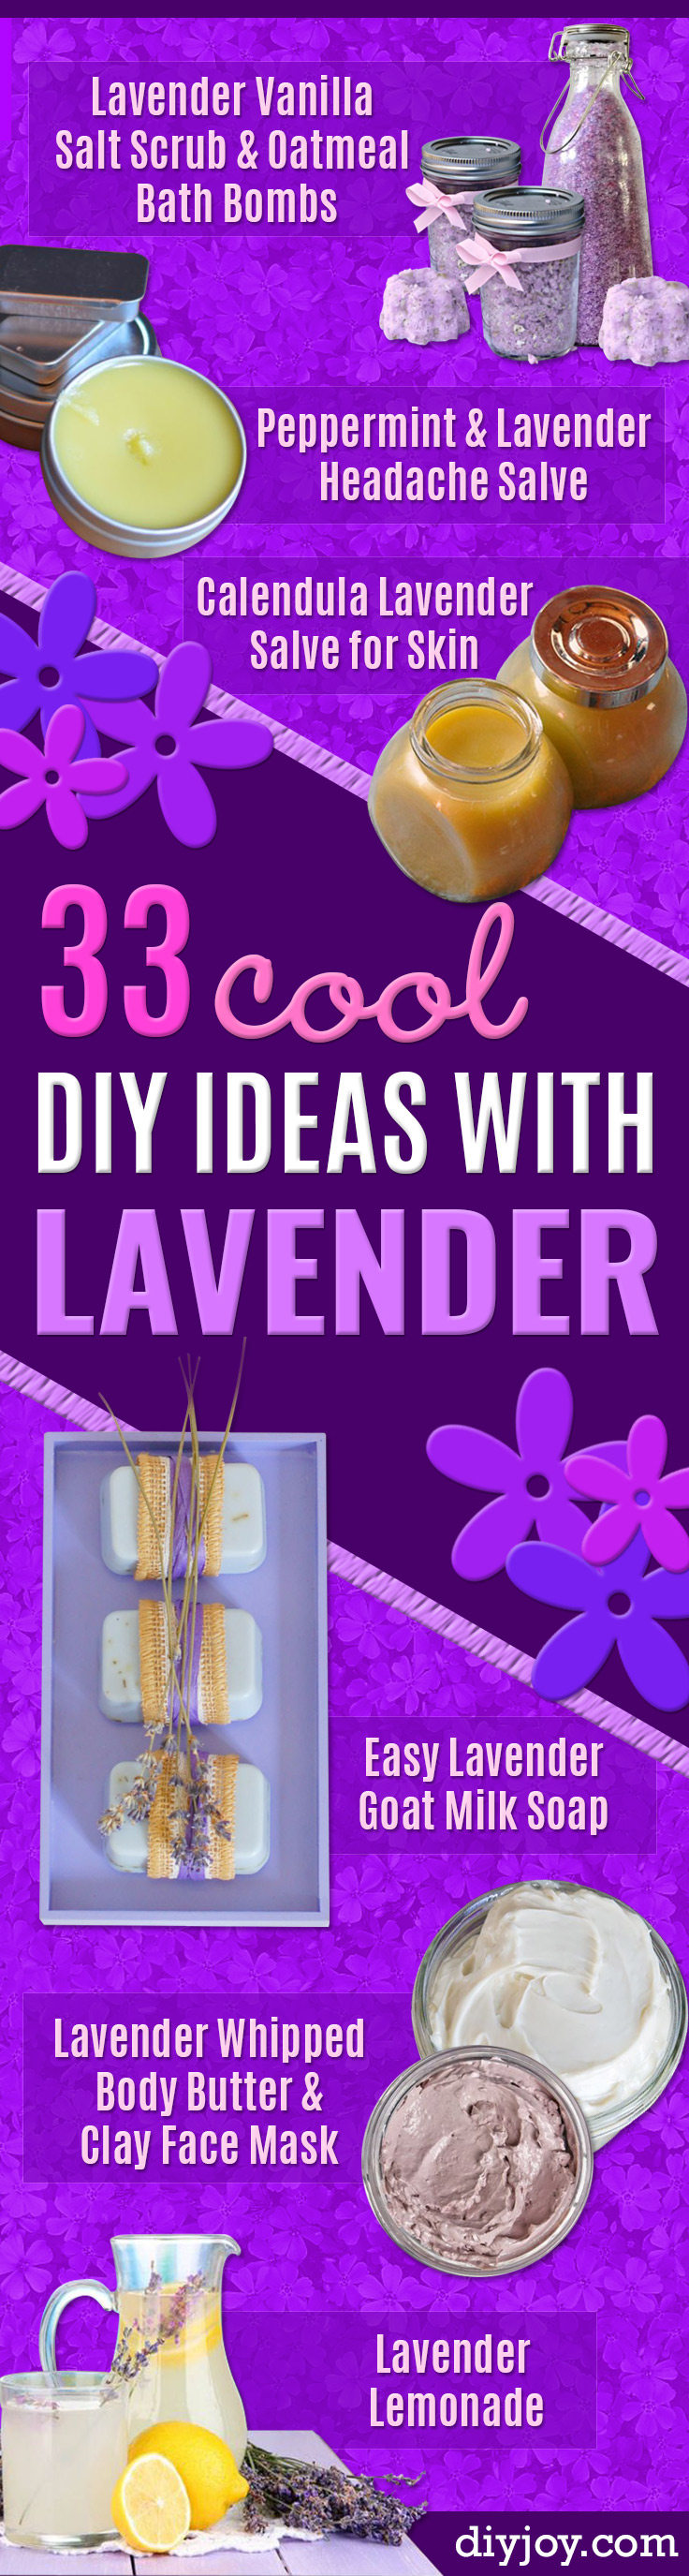 diy lavender recipes and gift Ideas to make with lavender - Food, Beauty, Baking Tutorials With Fresh and Dried Lavender - Lavender Recipe Ideas, Healthy and Vegan #lavender